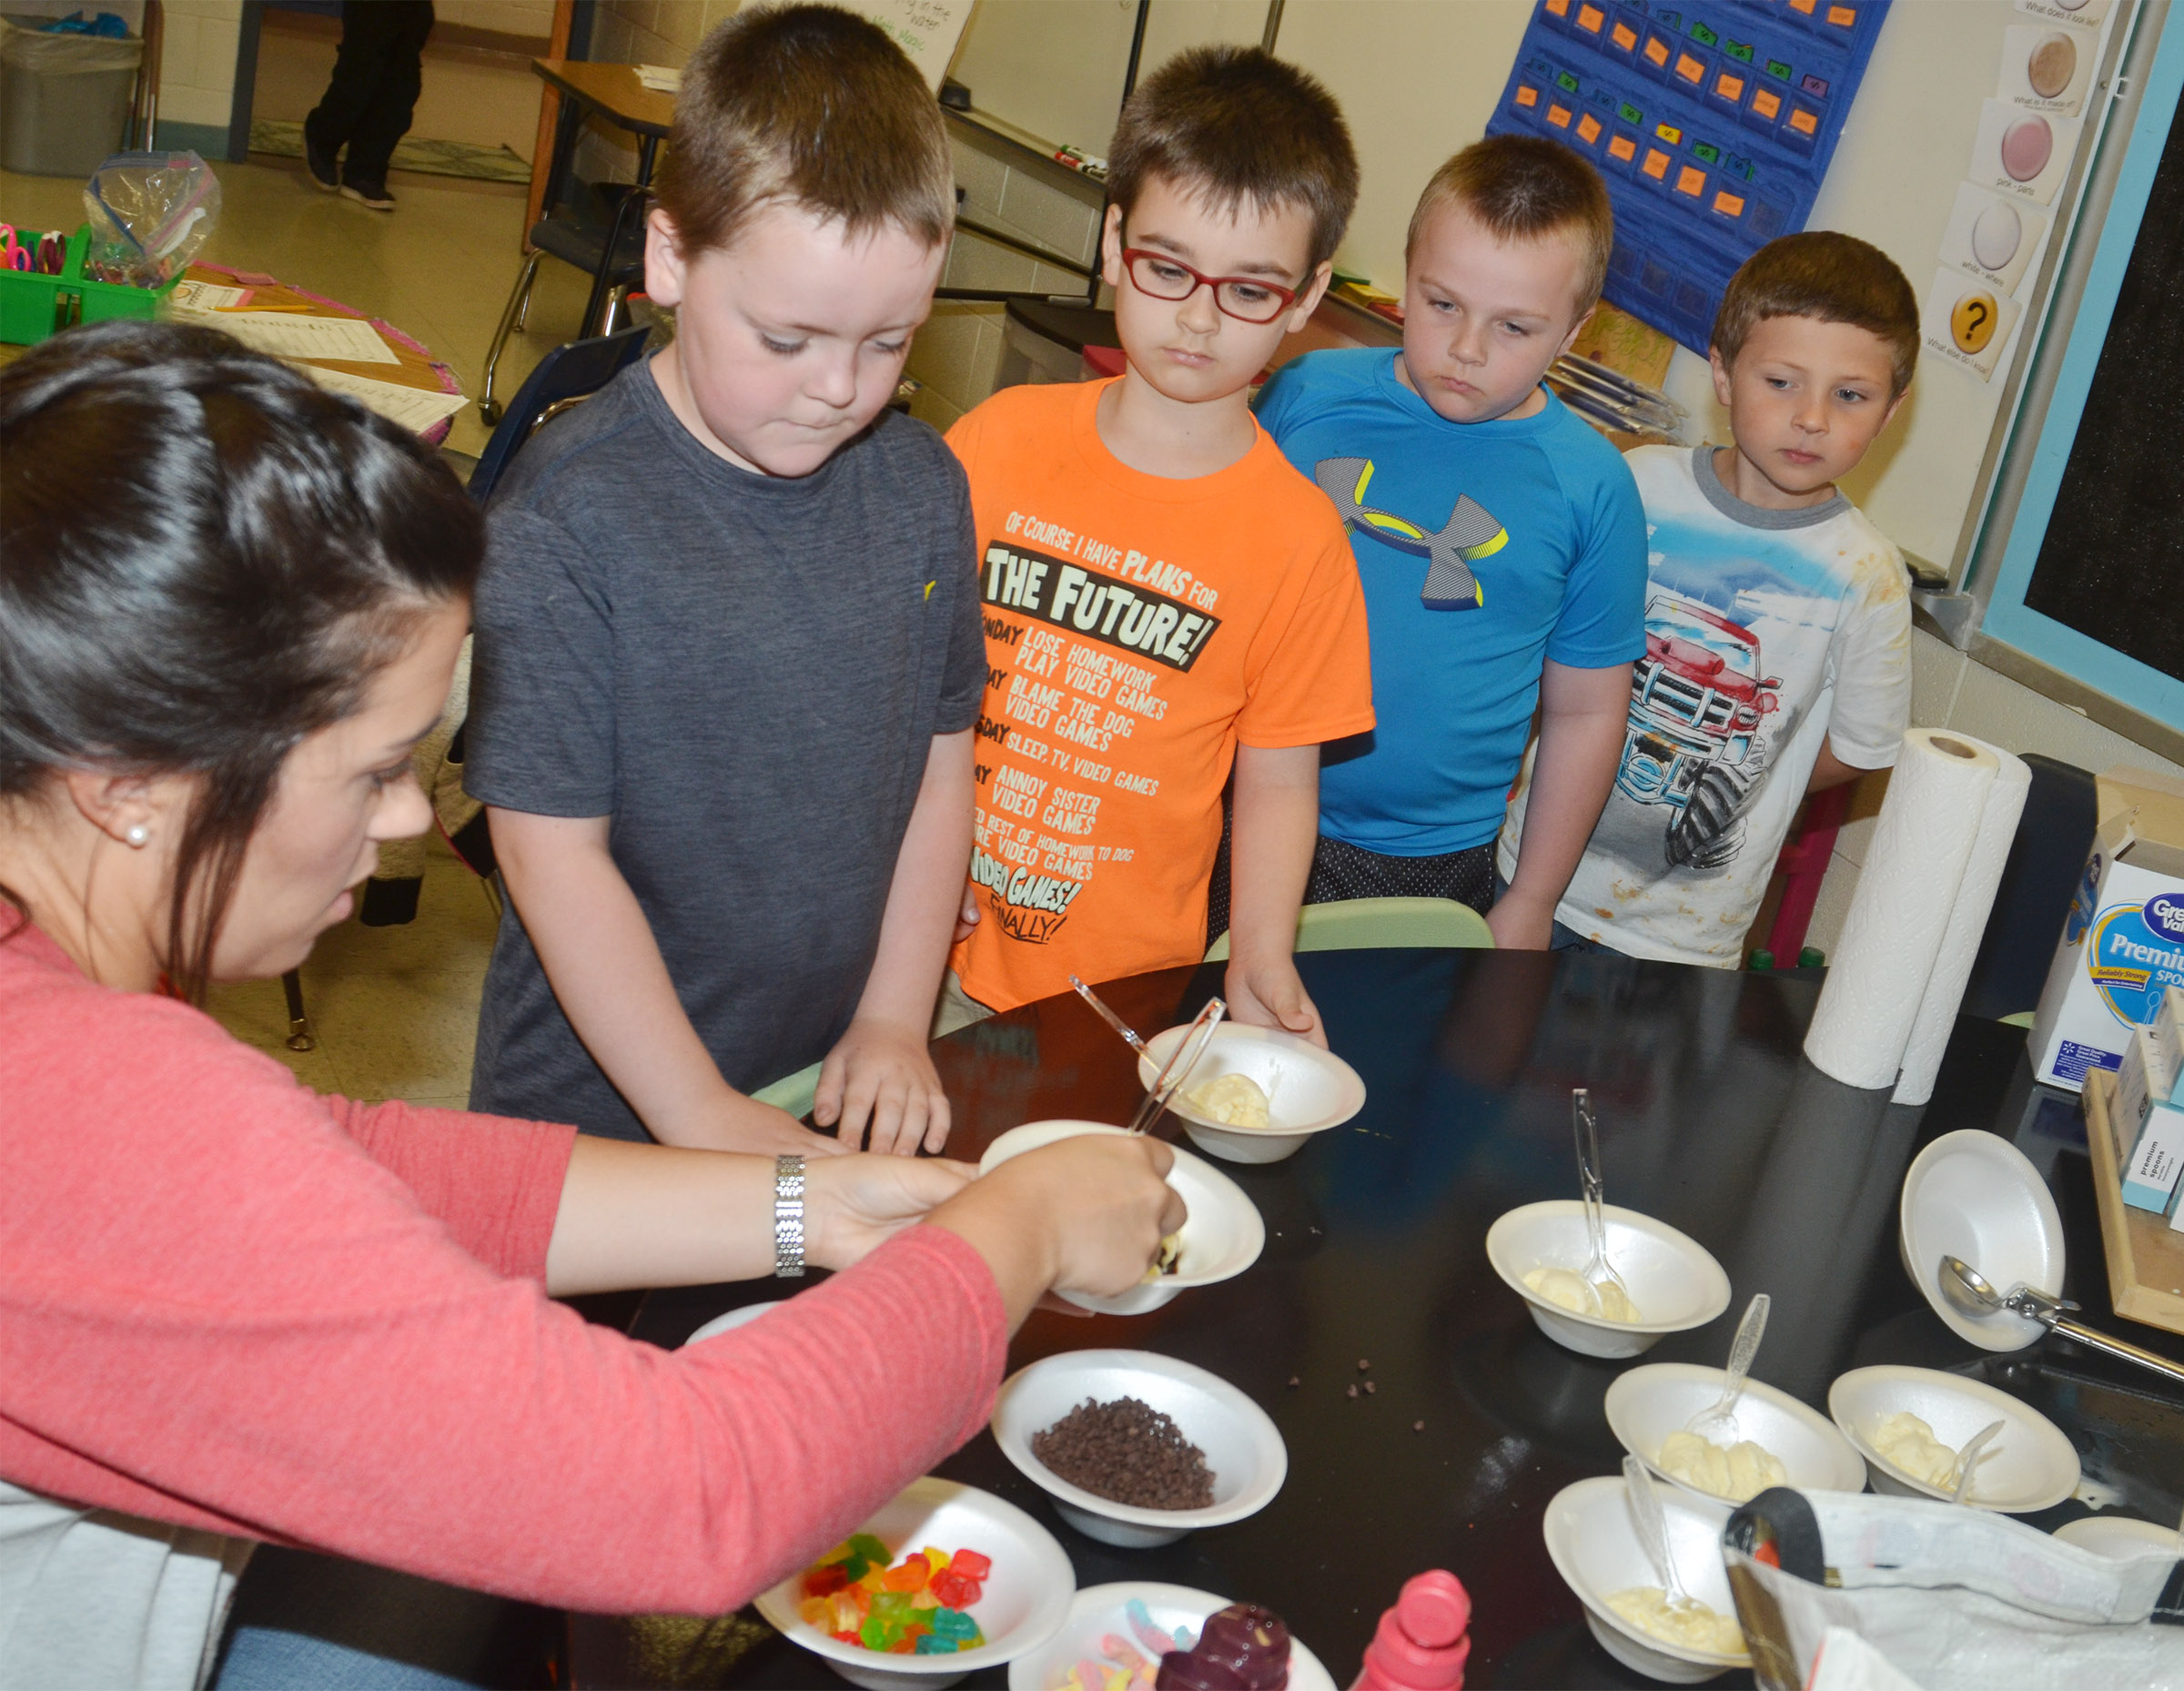 CES first-grade teacher Hailey Ogle serves Eric Epperson some sprinkles on his ice cream sundae.